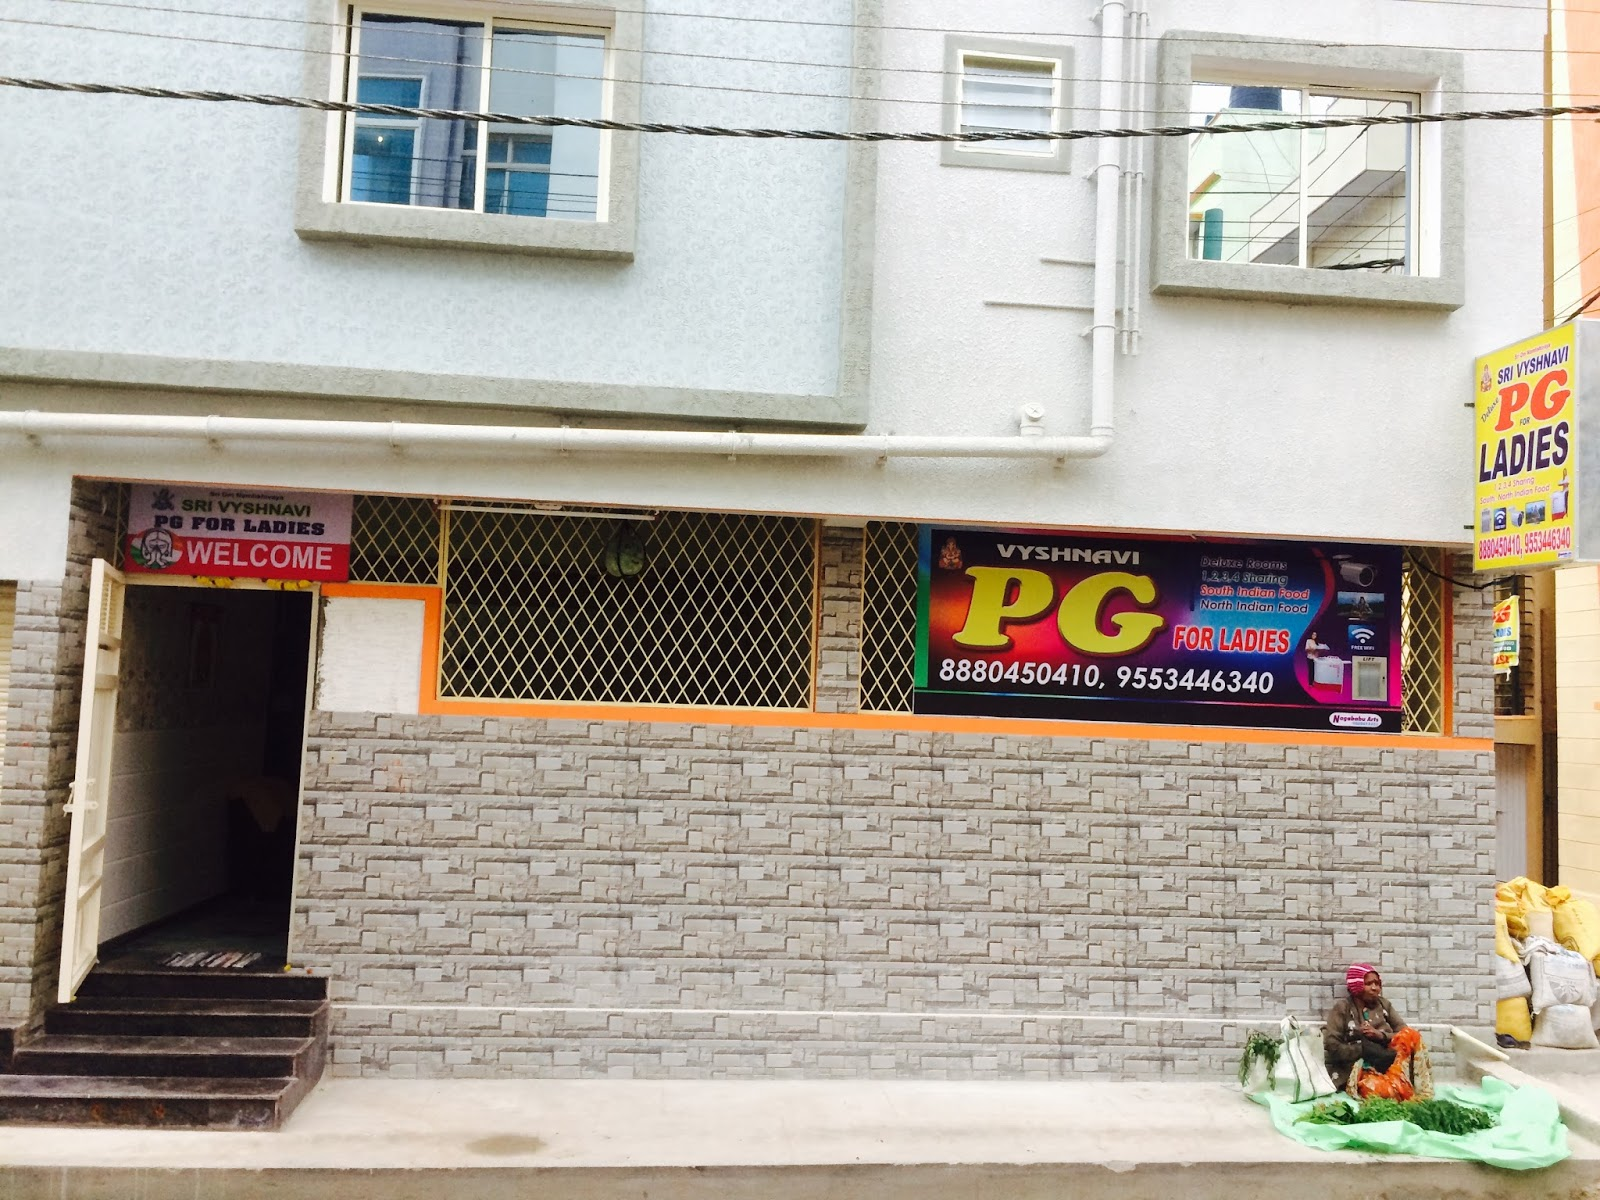 pg in bangalore, paying guest in bangalore, pgs in bangalore, pg near bangalore, luxury pg in bangalore, luxury pgs in bangalore, best pg in bangalore, executive pg in bangalore, posh pg in bangalore, mens pg in bangalore, ladies pg in bangalore, pg in bangalore for female, pg in bangalore for male